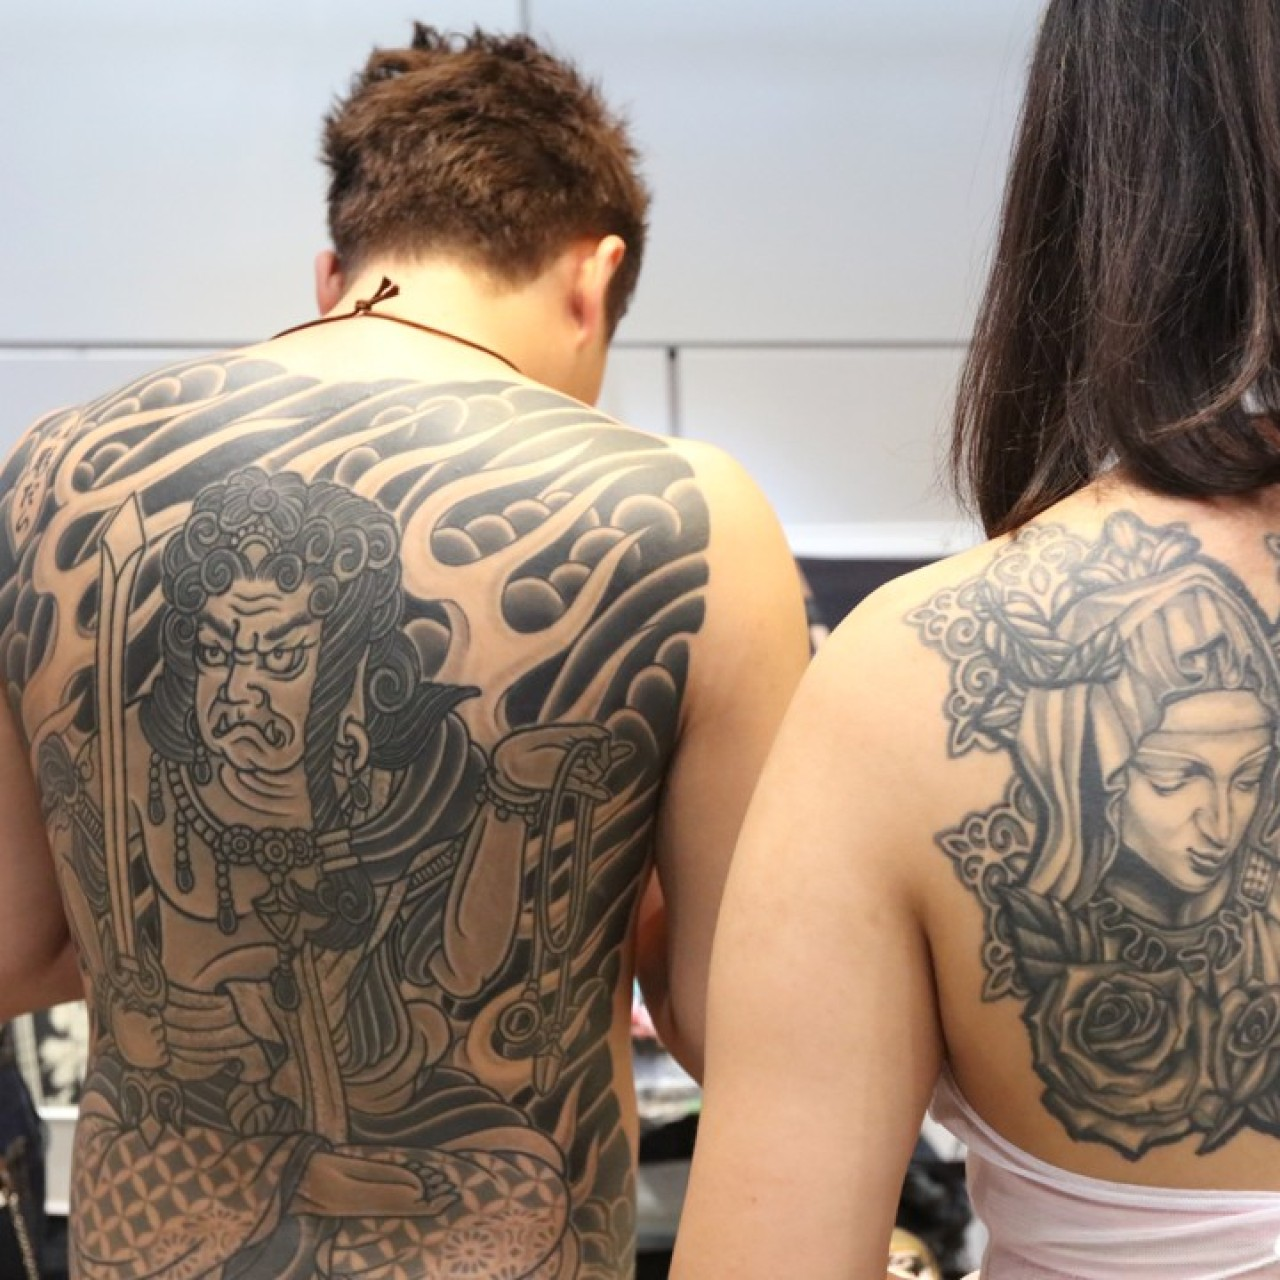 Liberal mindset has taken the taboo out of getting a tattoo in Hong